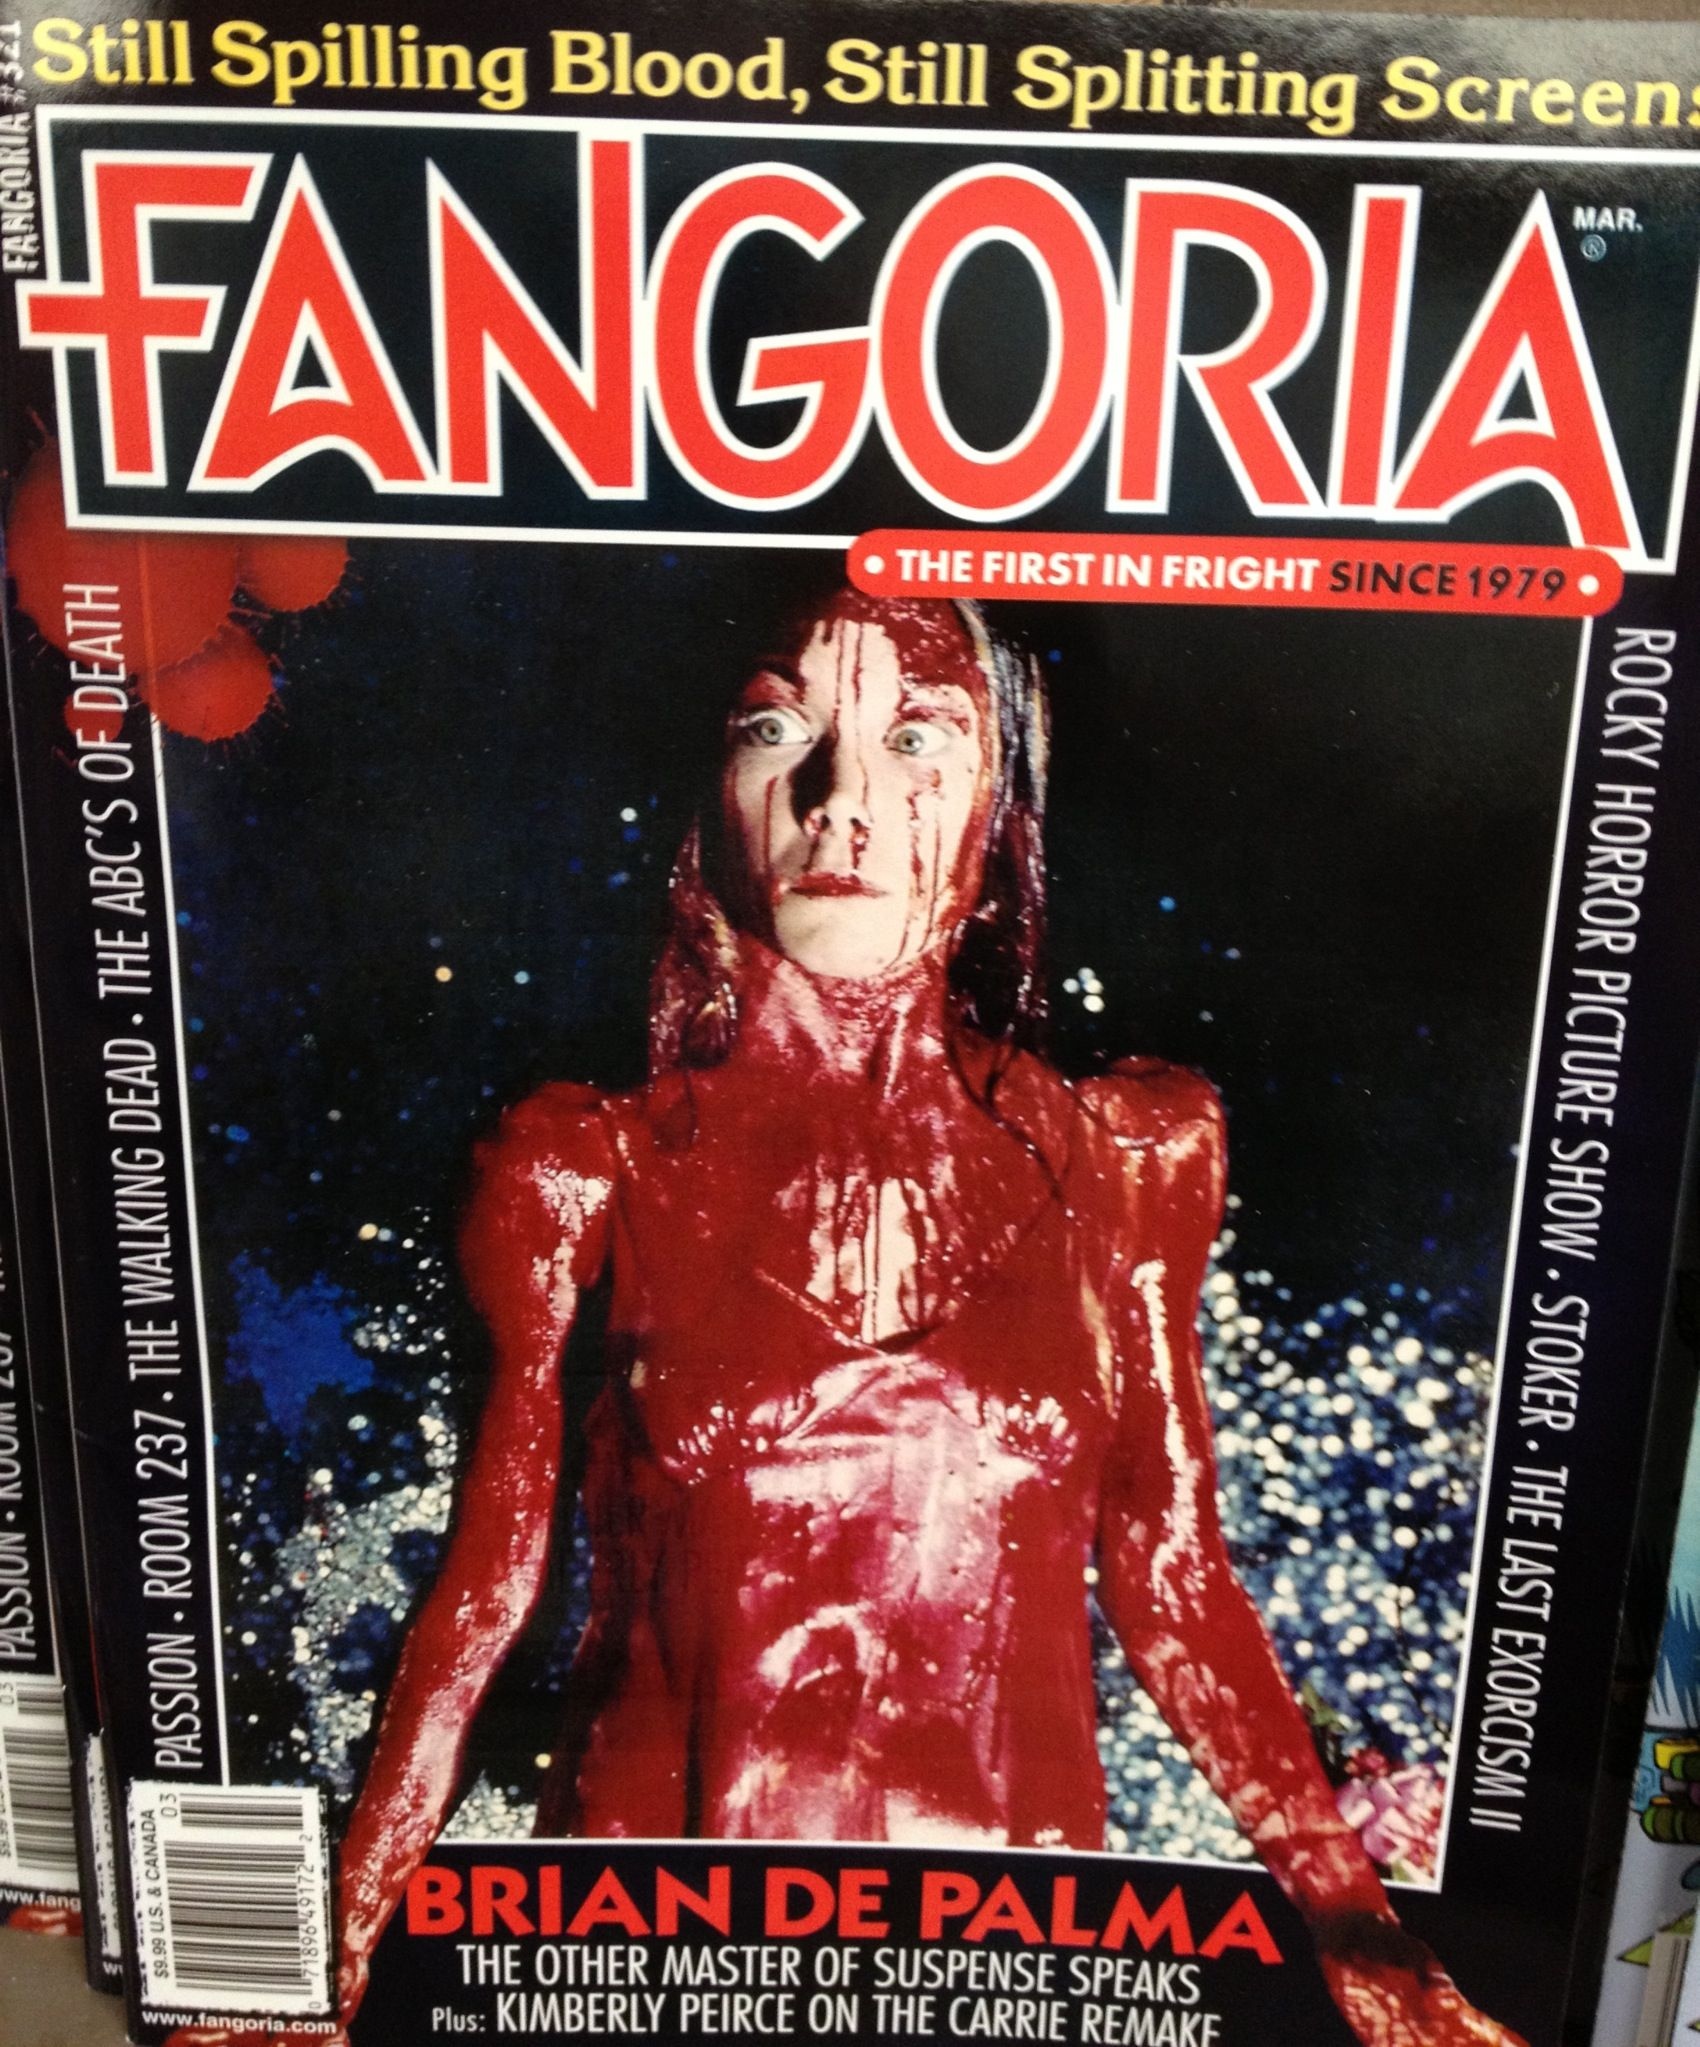 Fangoria Magazine. I Read This In The Bookstore. Did Not